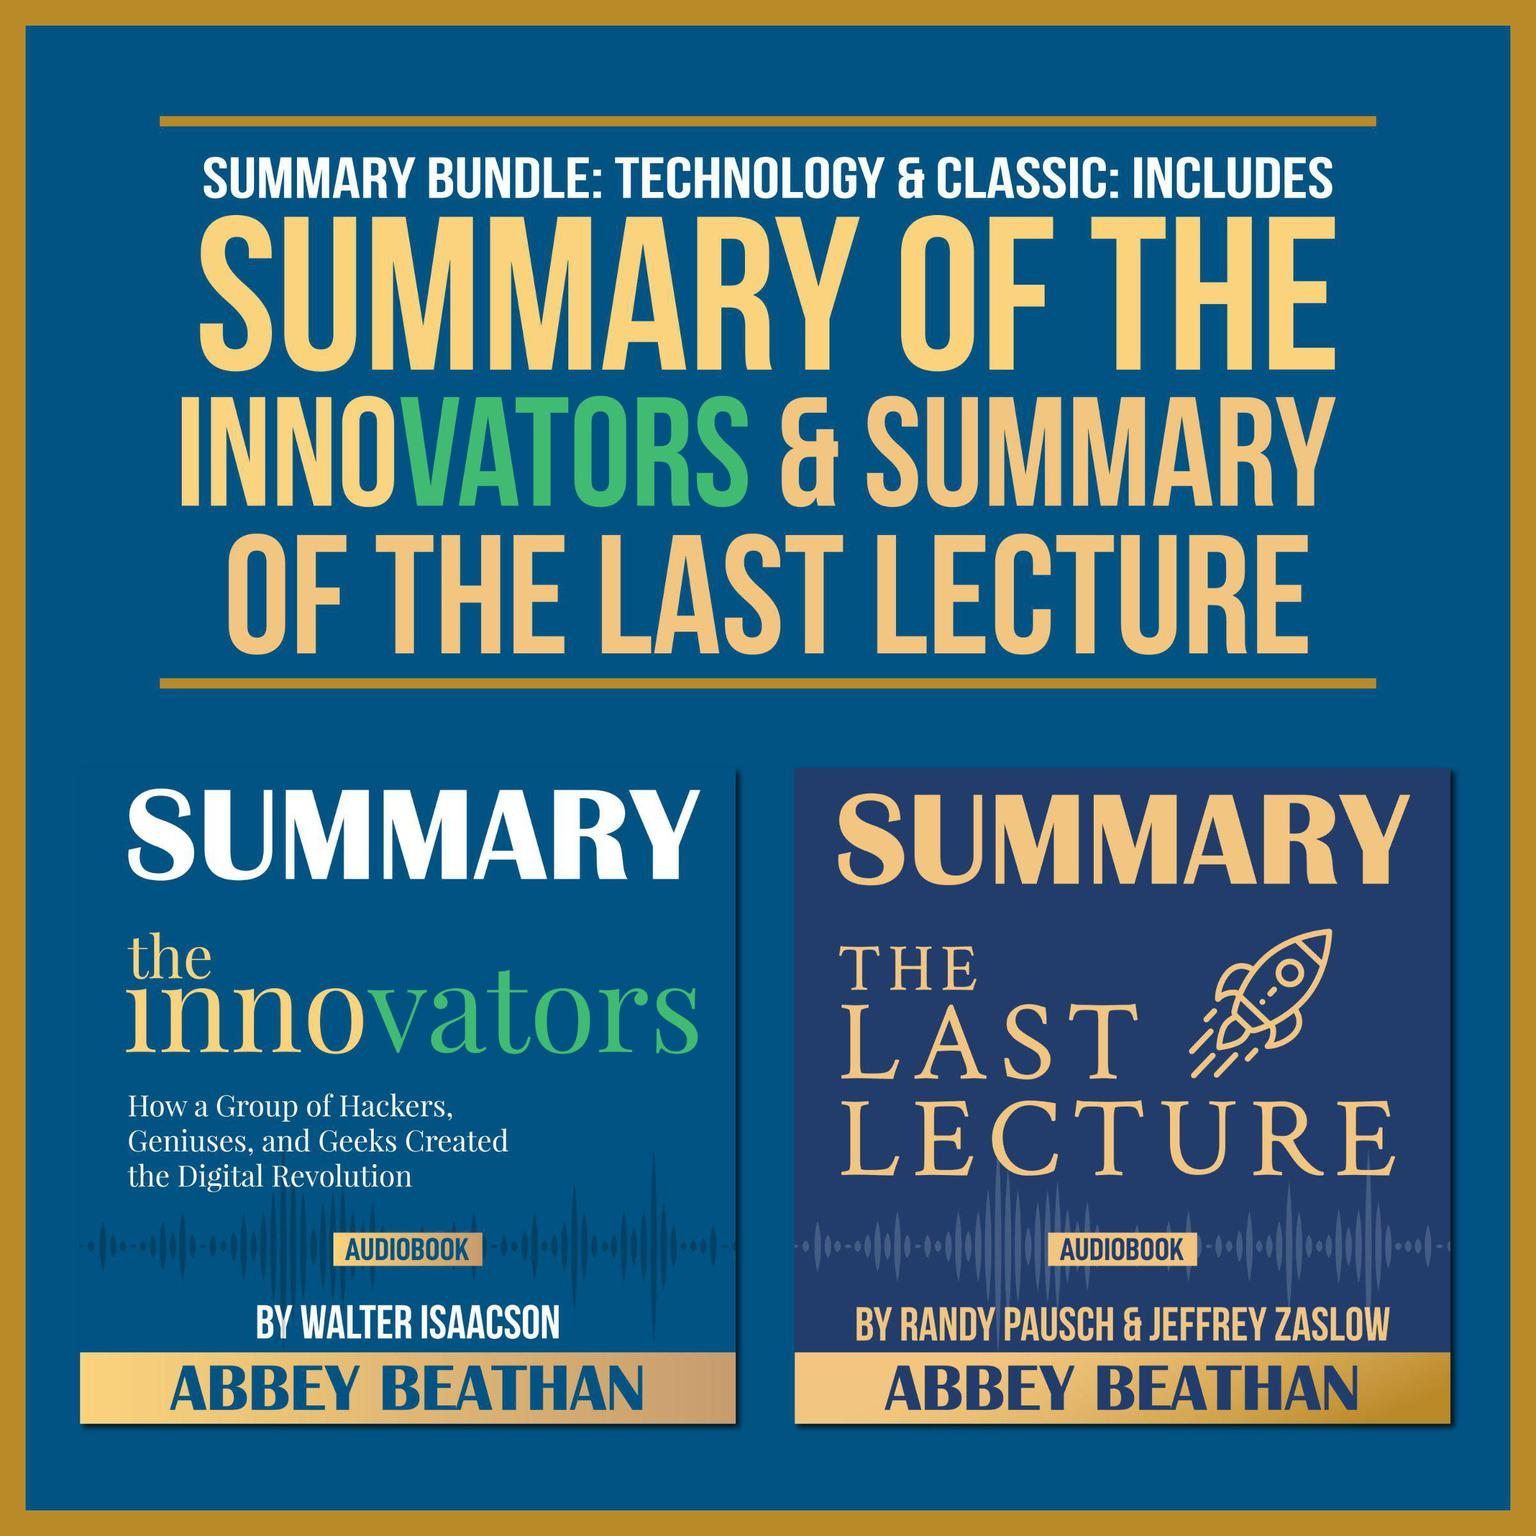 Summary Bundle: Technology & Classic: Includes Summary of The Innovators & Summary of The Last Lecture Audiobook, by Abbey Beathan